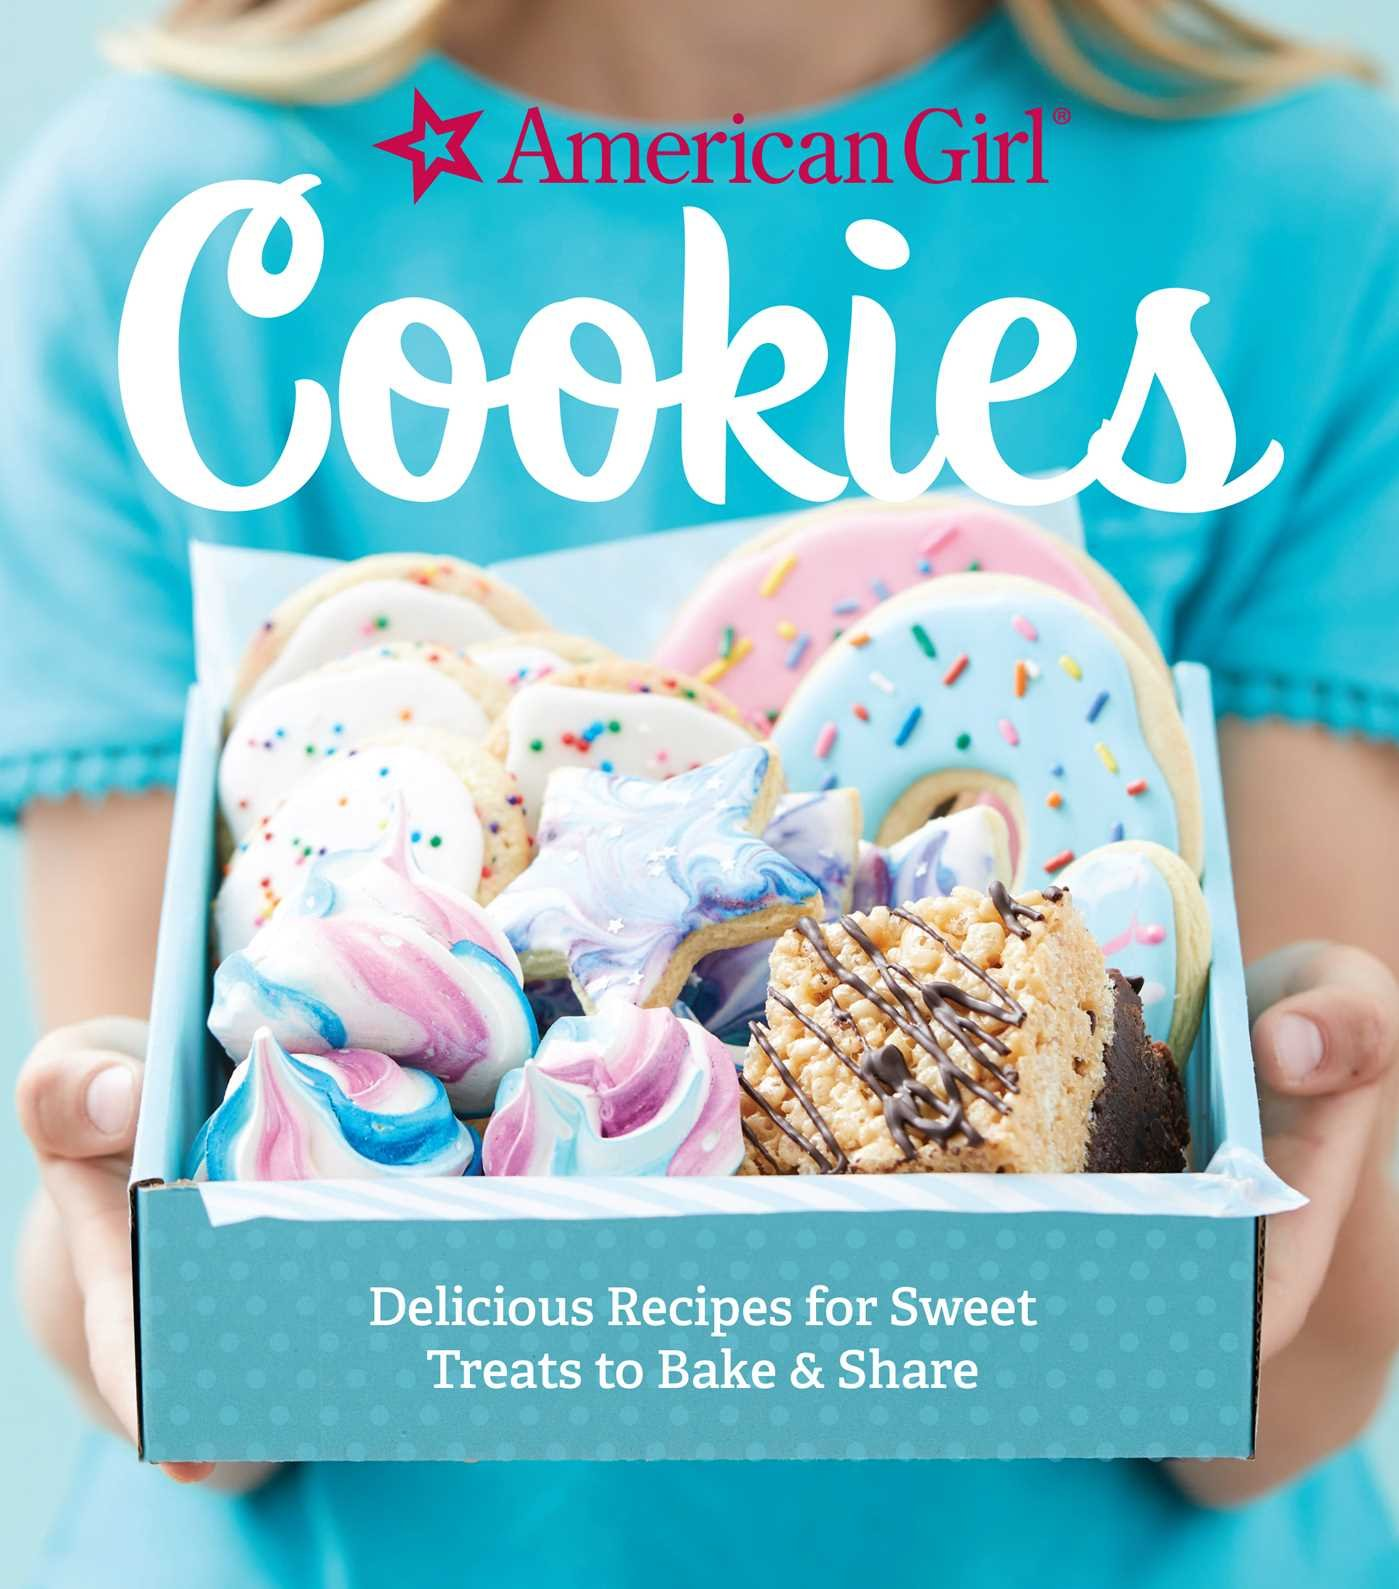 American Girl Cookies (Williams-Sonoma)